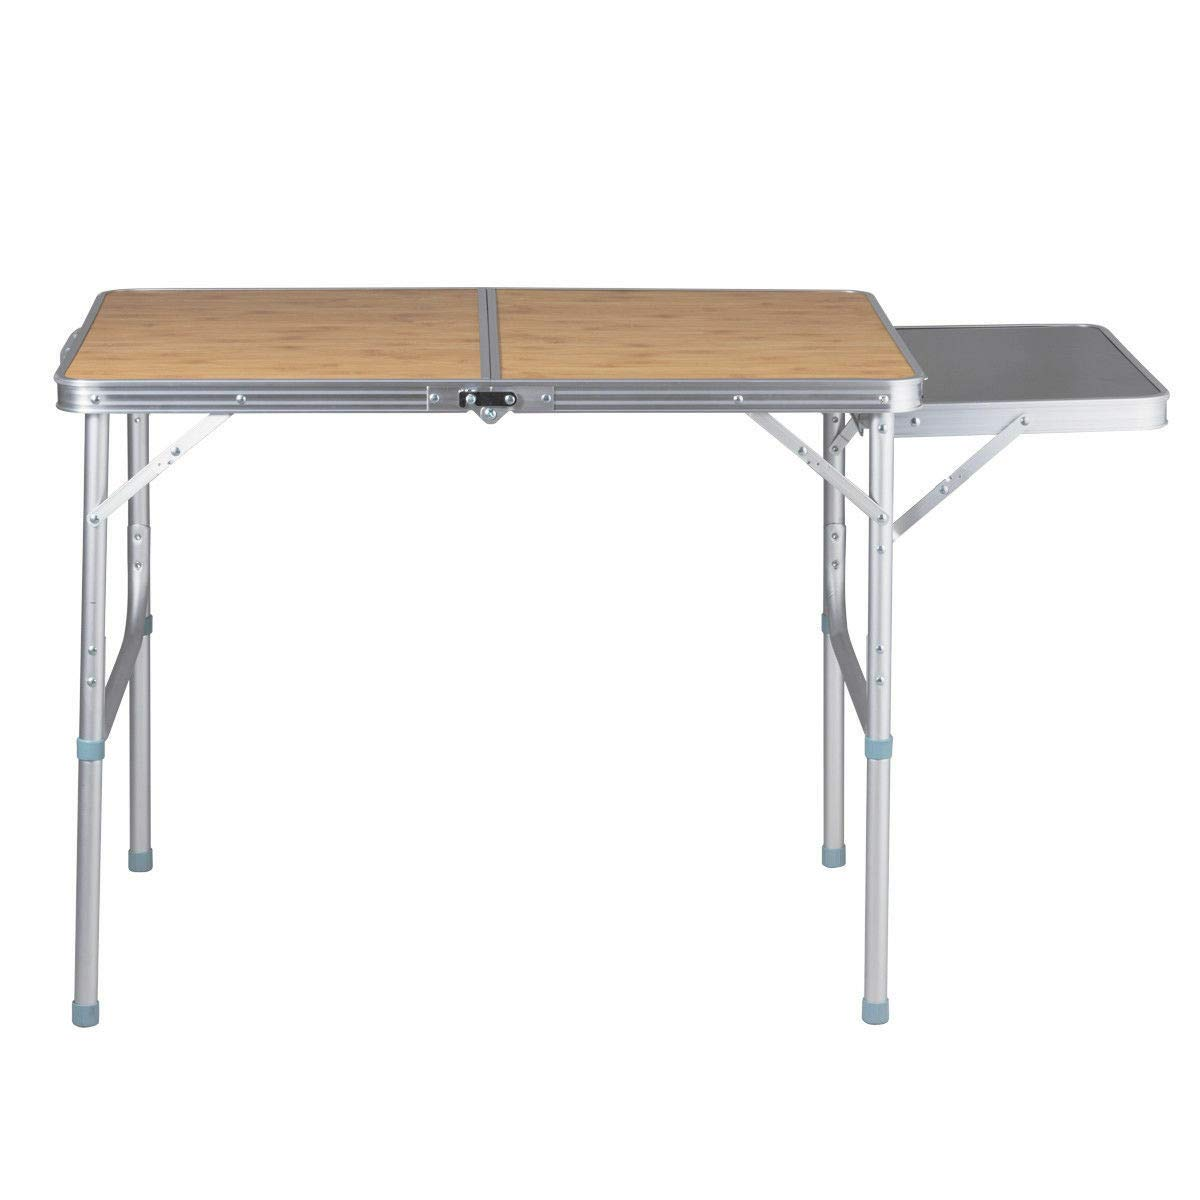 PNPGlobal Portable Folding Picnic Camping Trade Show Table Indoor Outdoor Patio Furniture by PNPGlobal